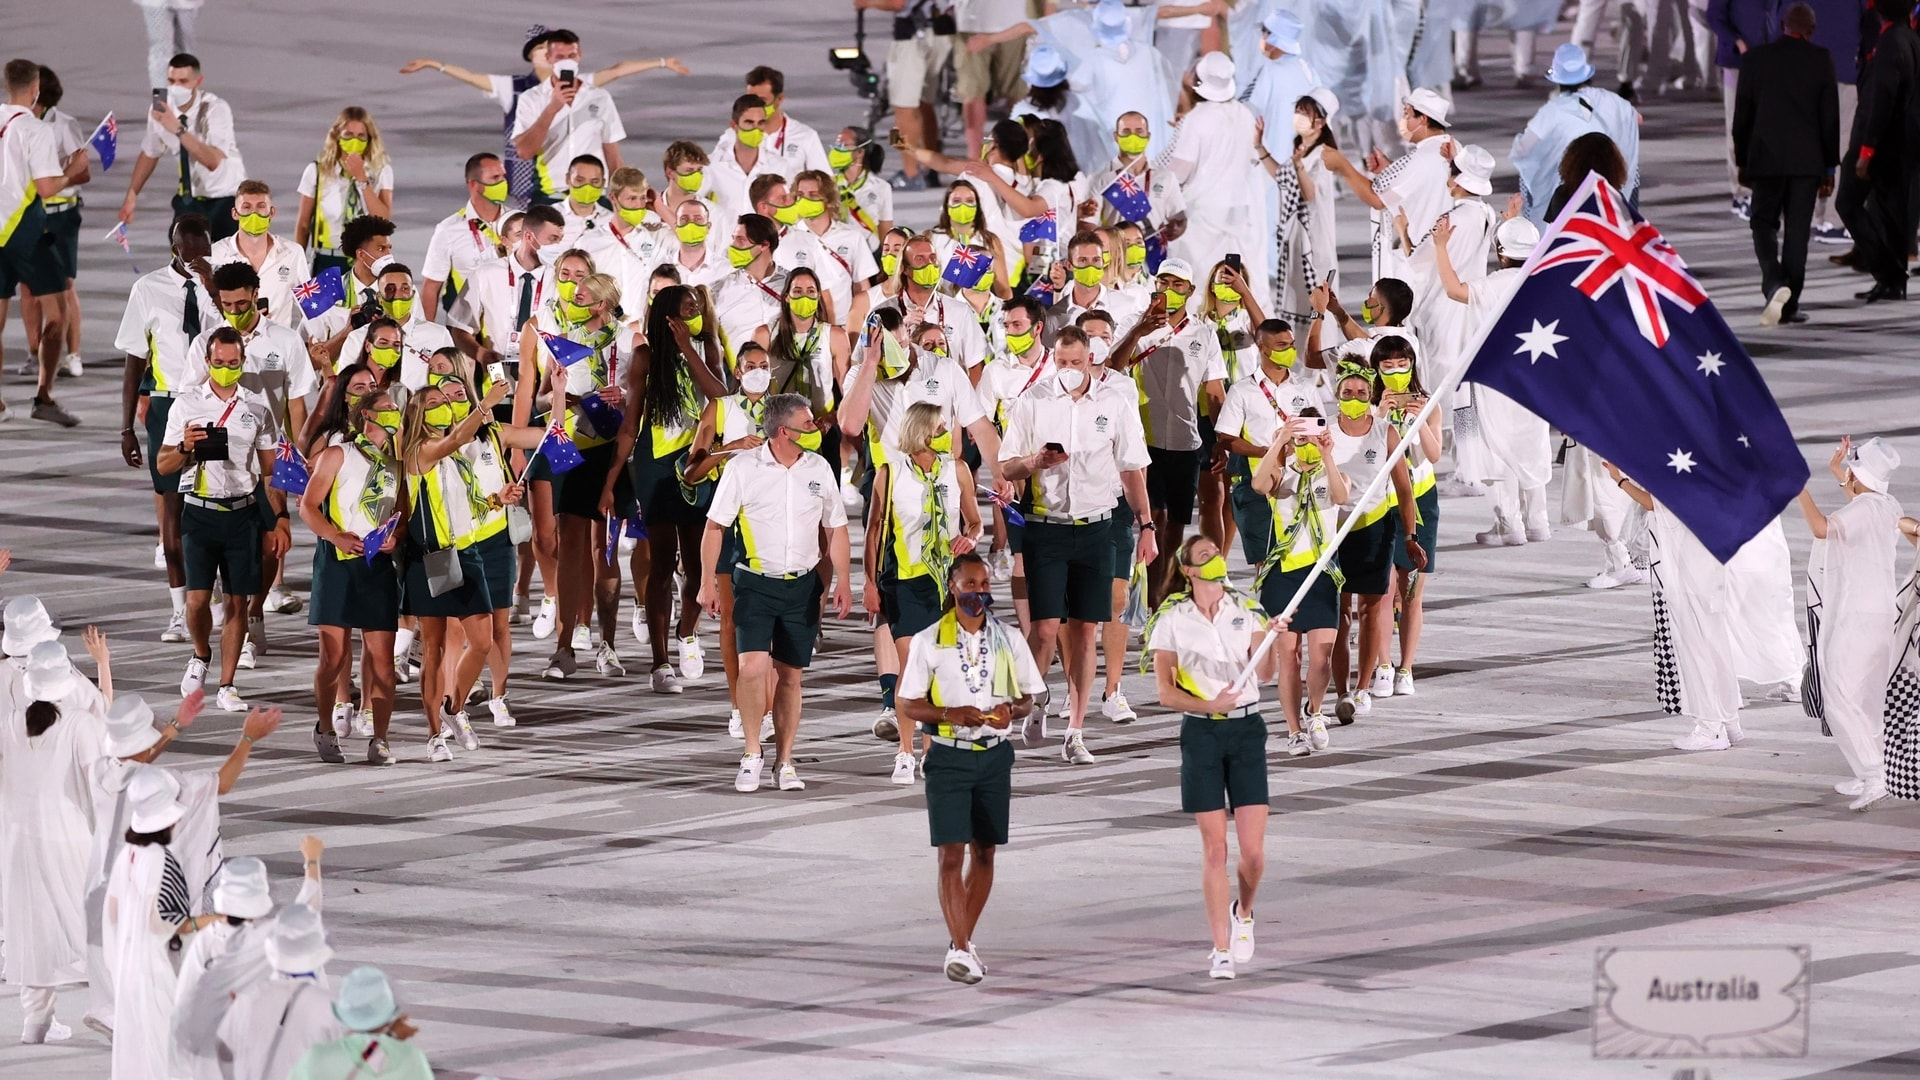 Image for Australia: Athletes sorry for room damage, mascots 'unharmed'